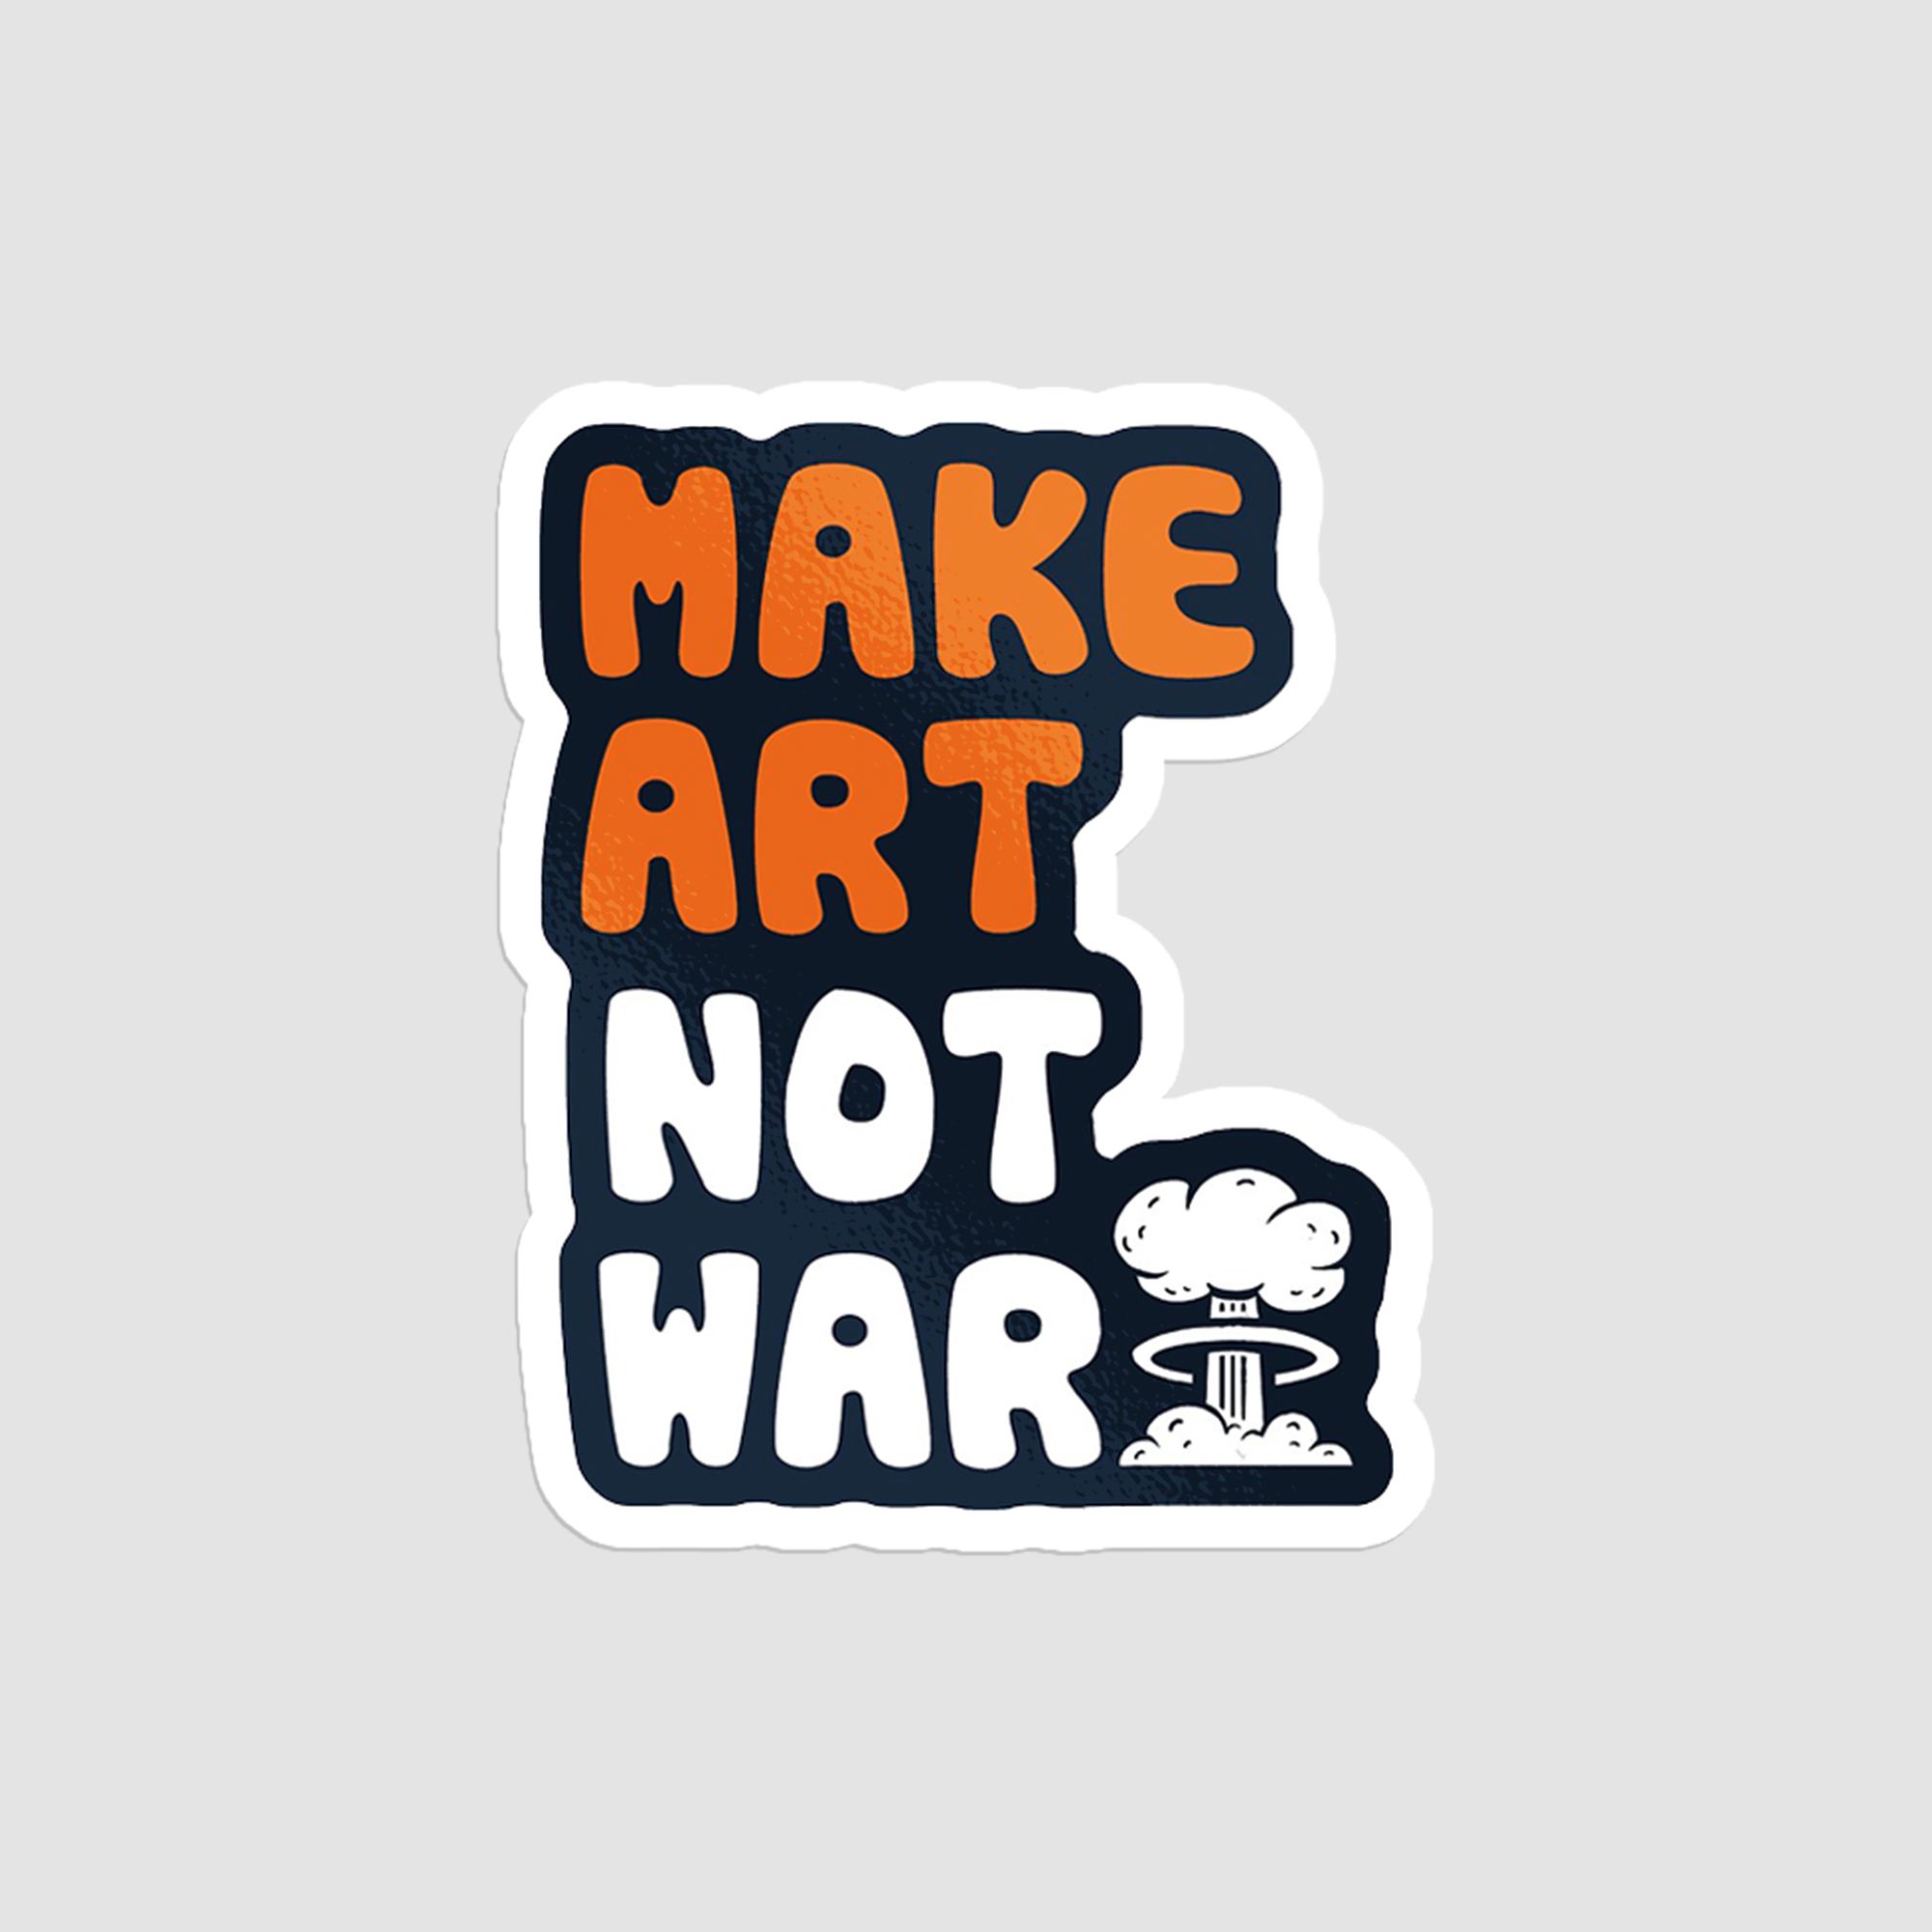 استیکر لپتاپ Make Art Not War - از روبرو